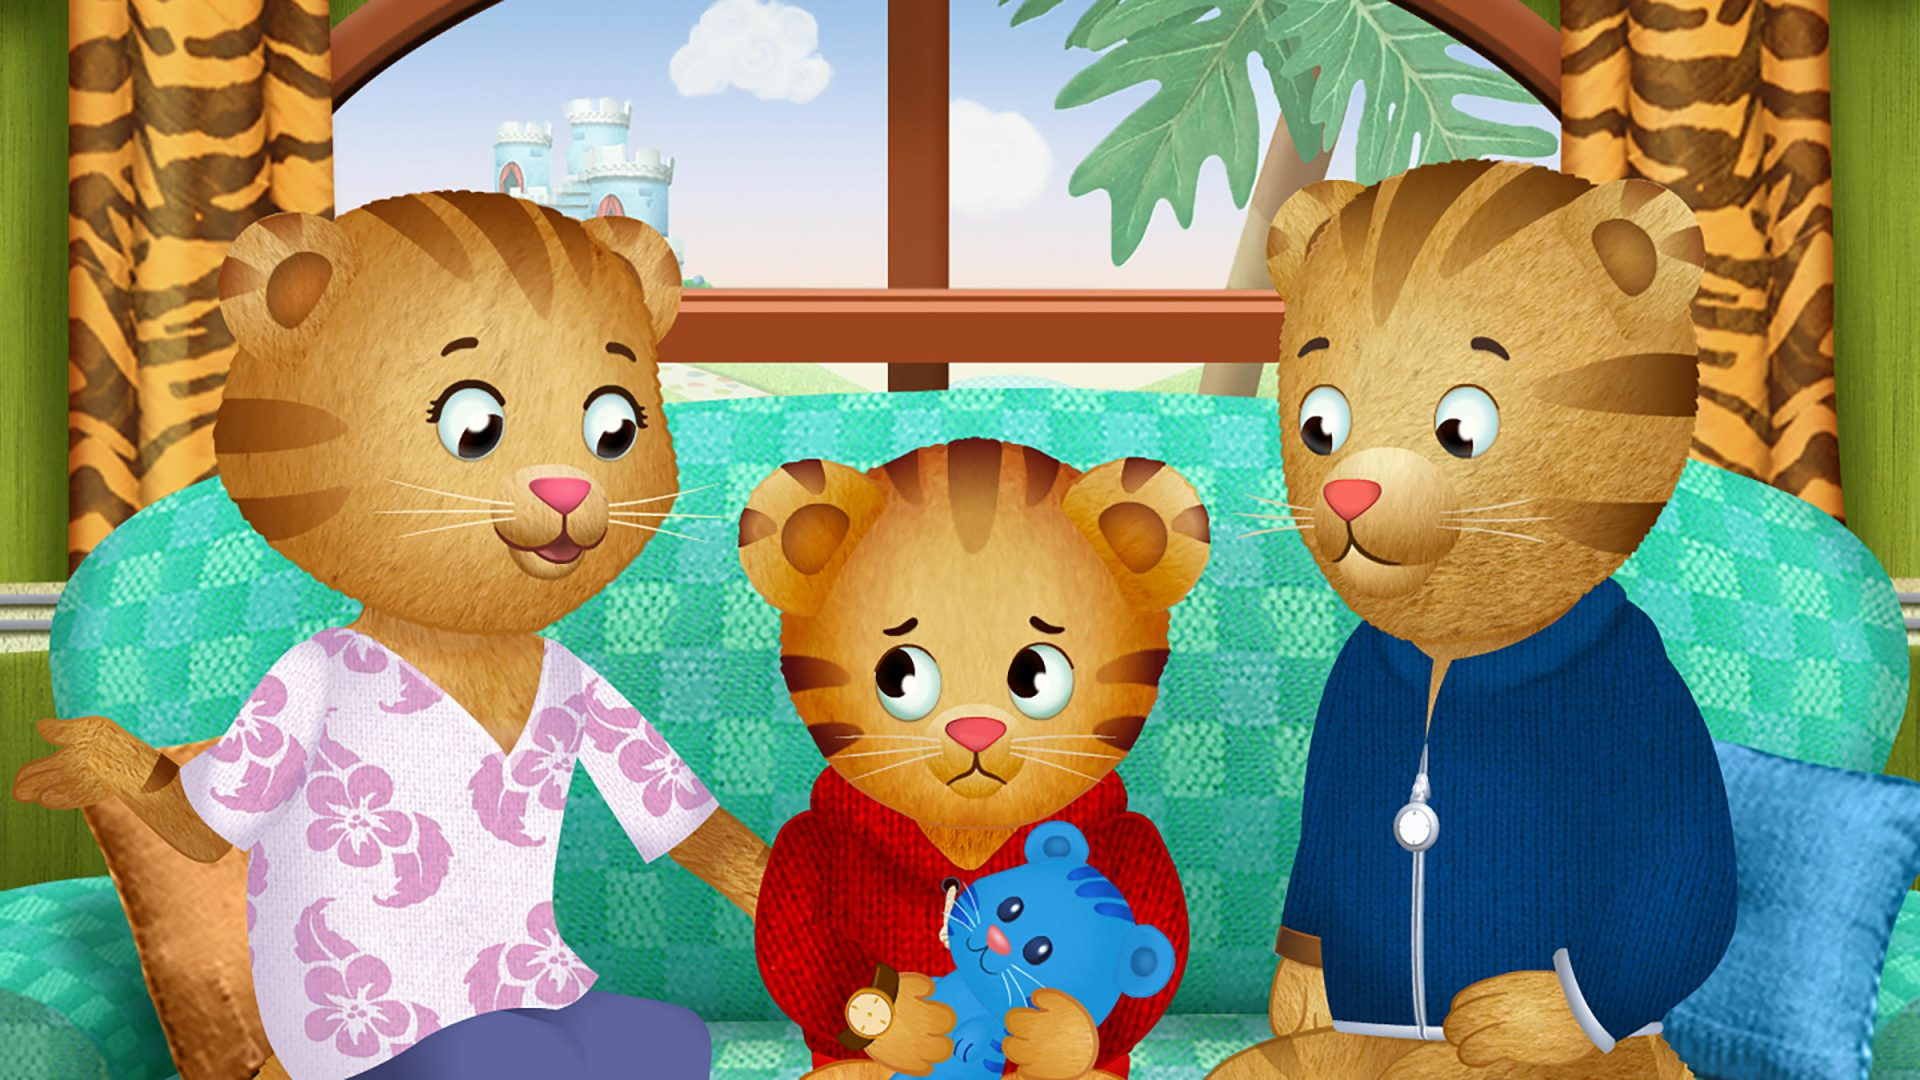 Daniel Tiger Learns To Cope When The Pandemic Reaches The World Of Make Believe Witf